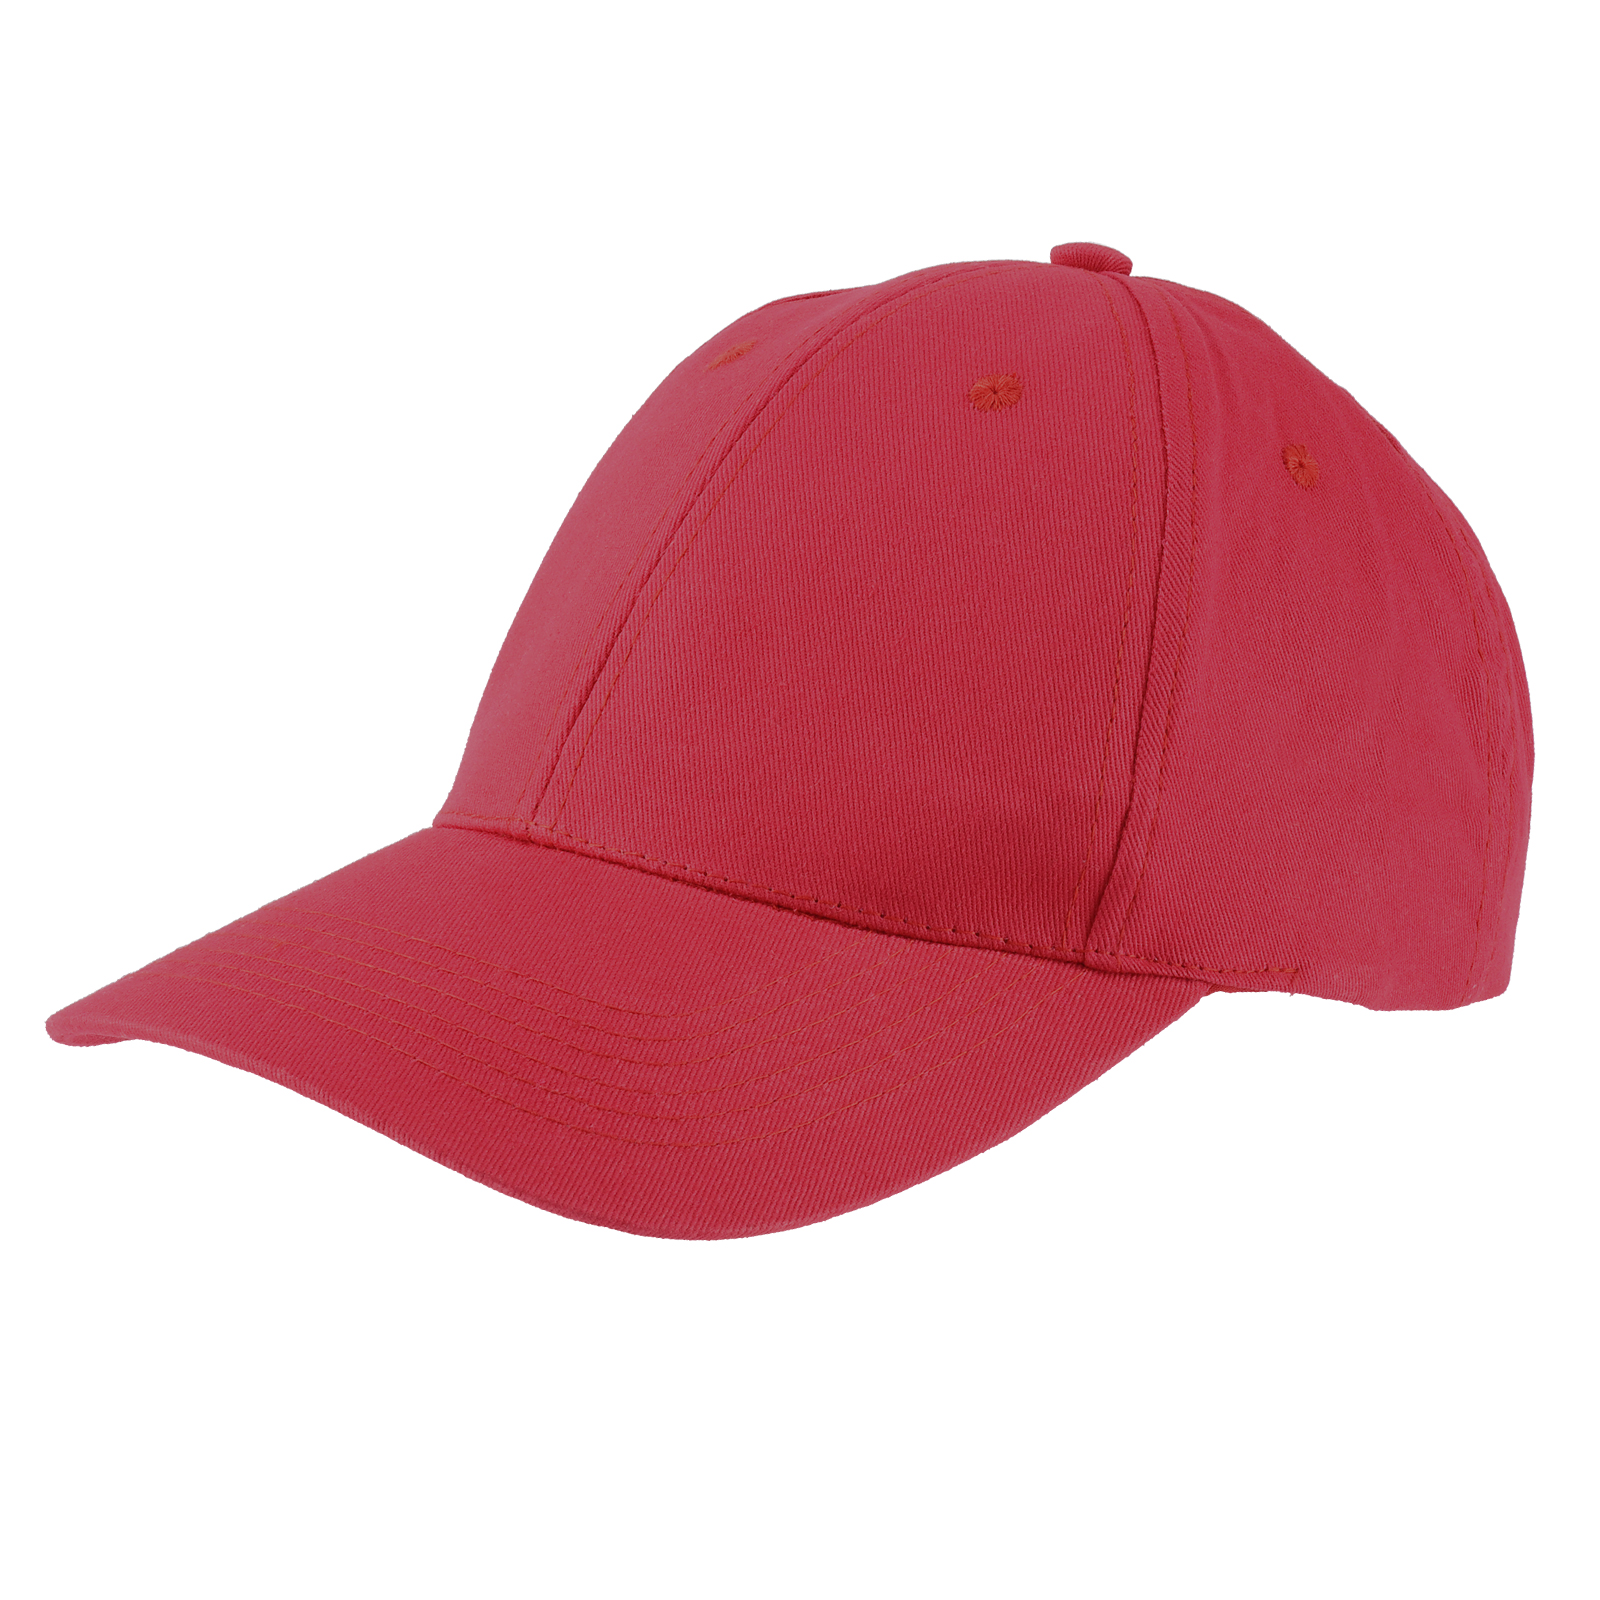 casquette-homme-rouge-CP-00183--F16